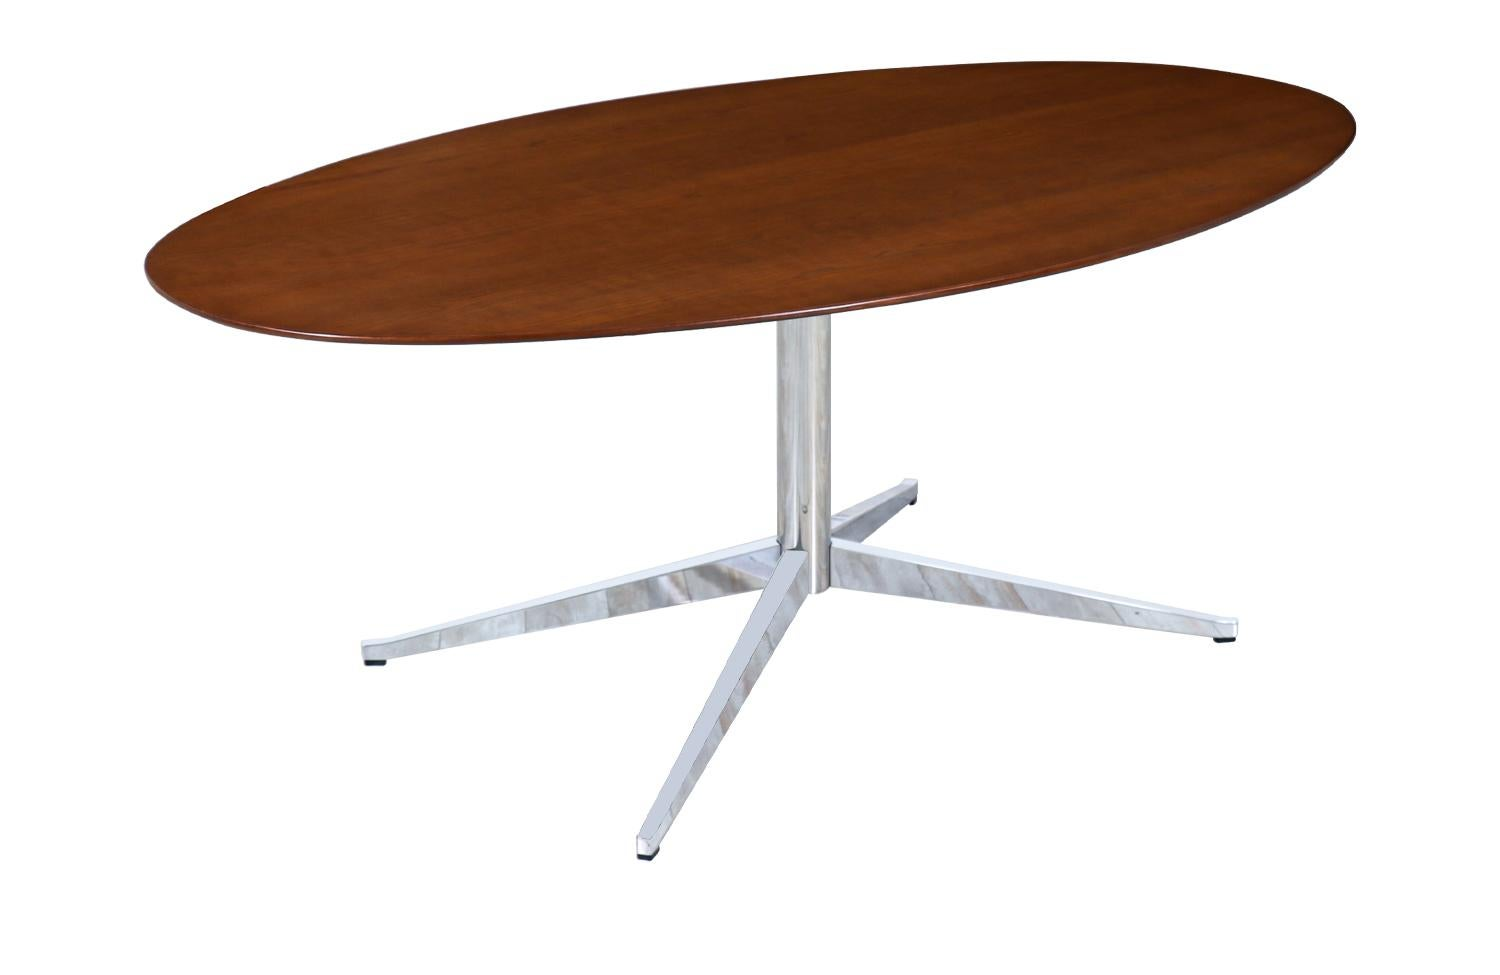 Florence Knoll Oval Dining Table / Desk for Knoll Inc.